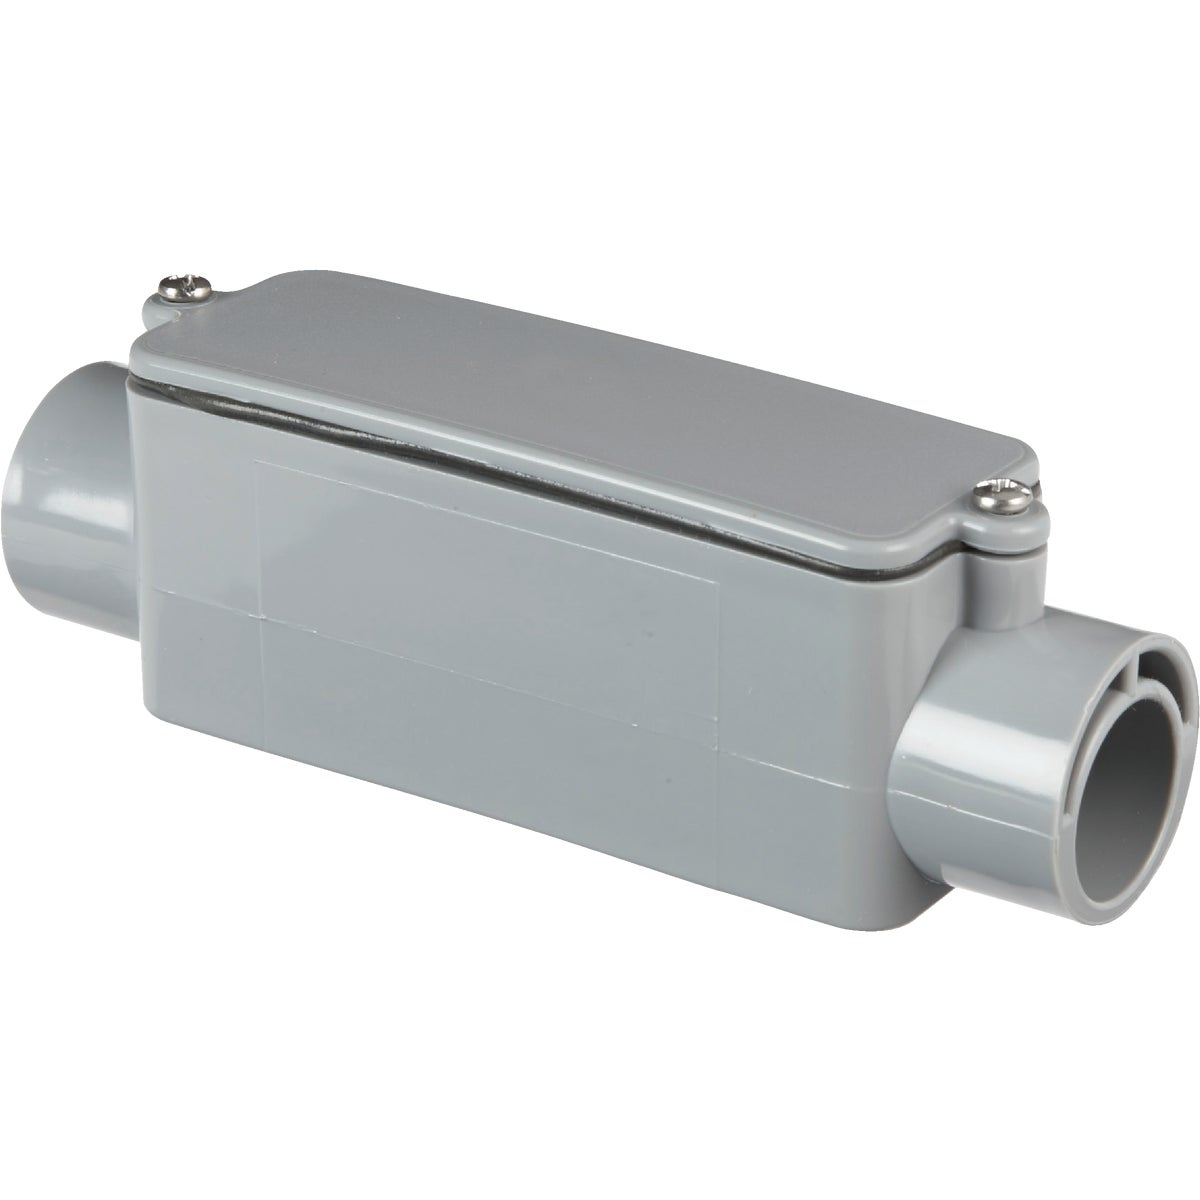 "3/4"" C ACCESS FITTING - E987ECTN by Thomas & Betts"